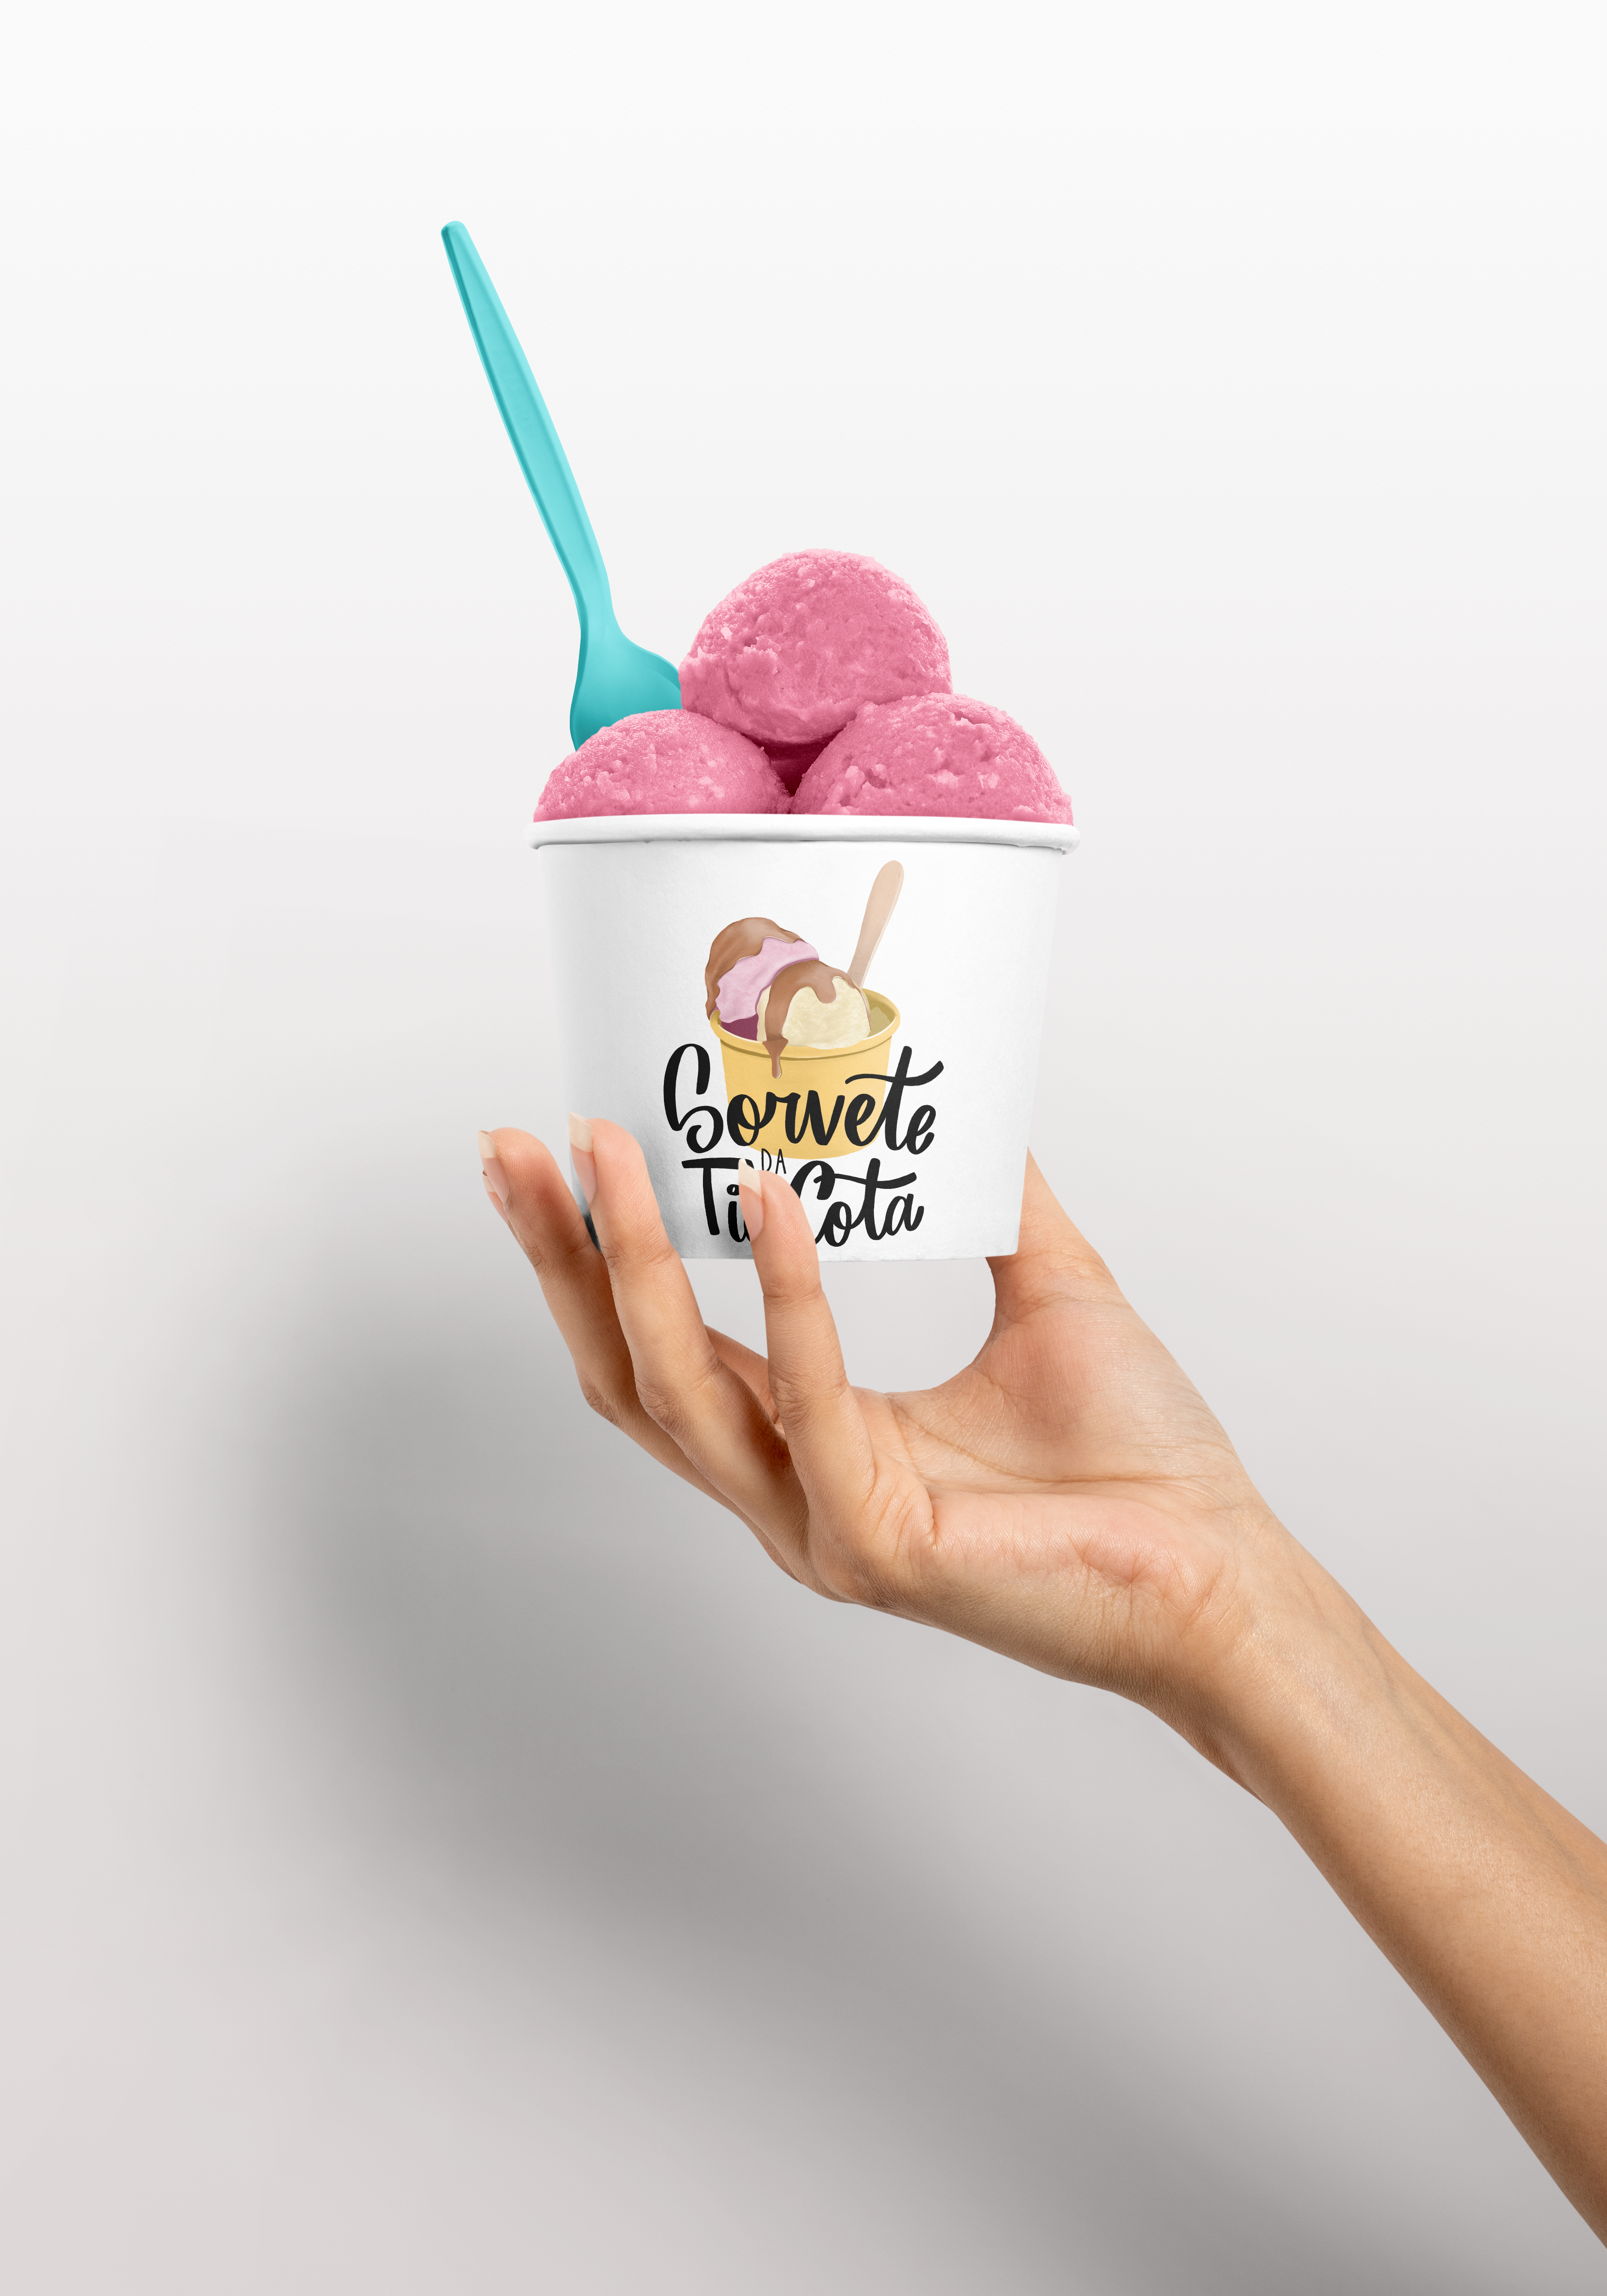 woman holding ice cream cup with 3 scoops of pink ice cream and a blue spoon